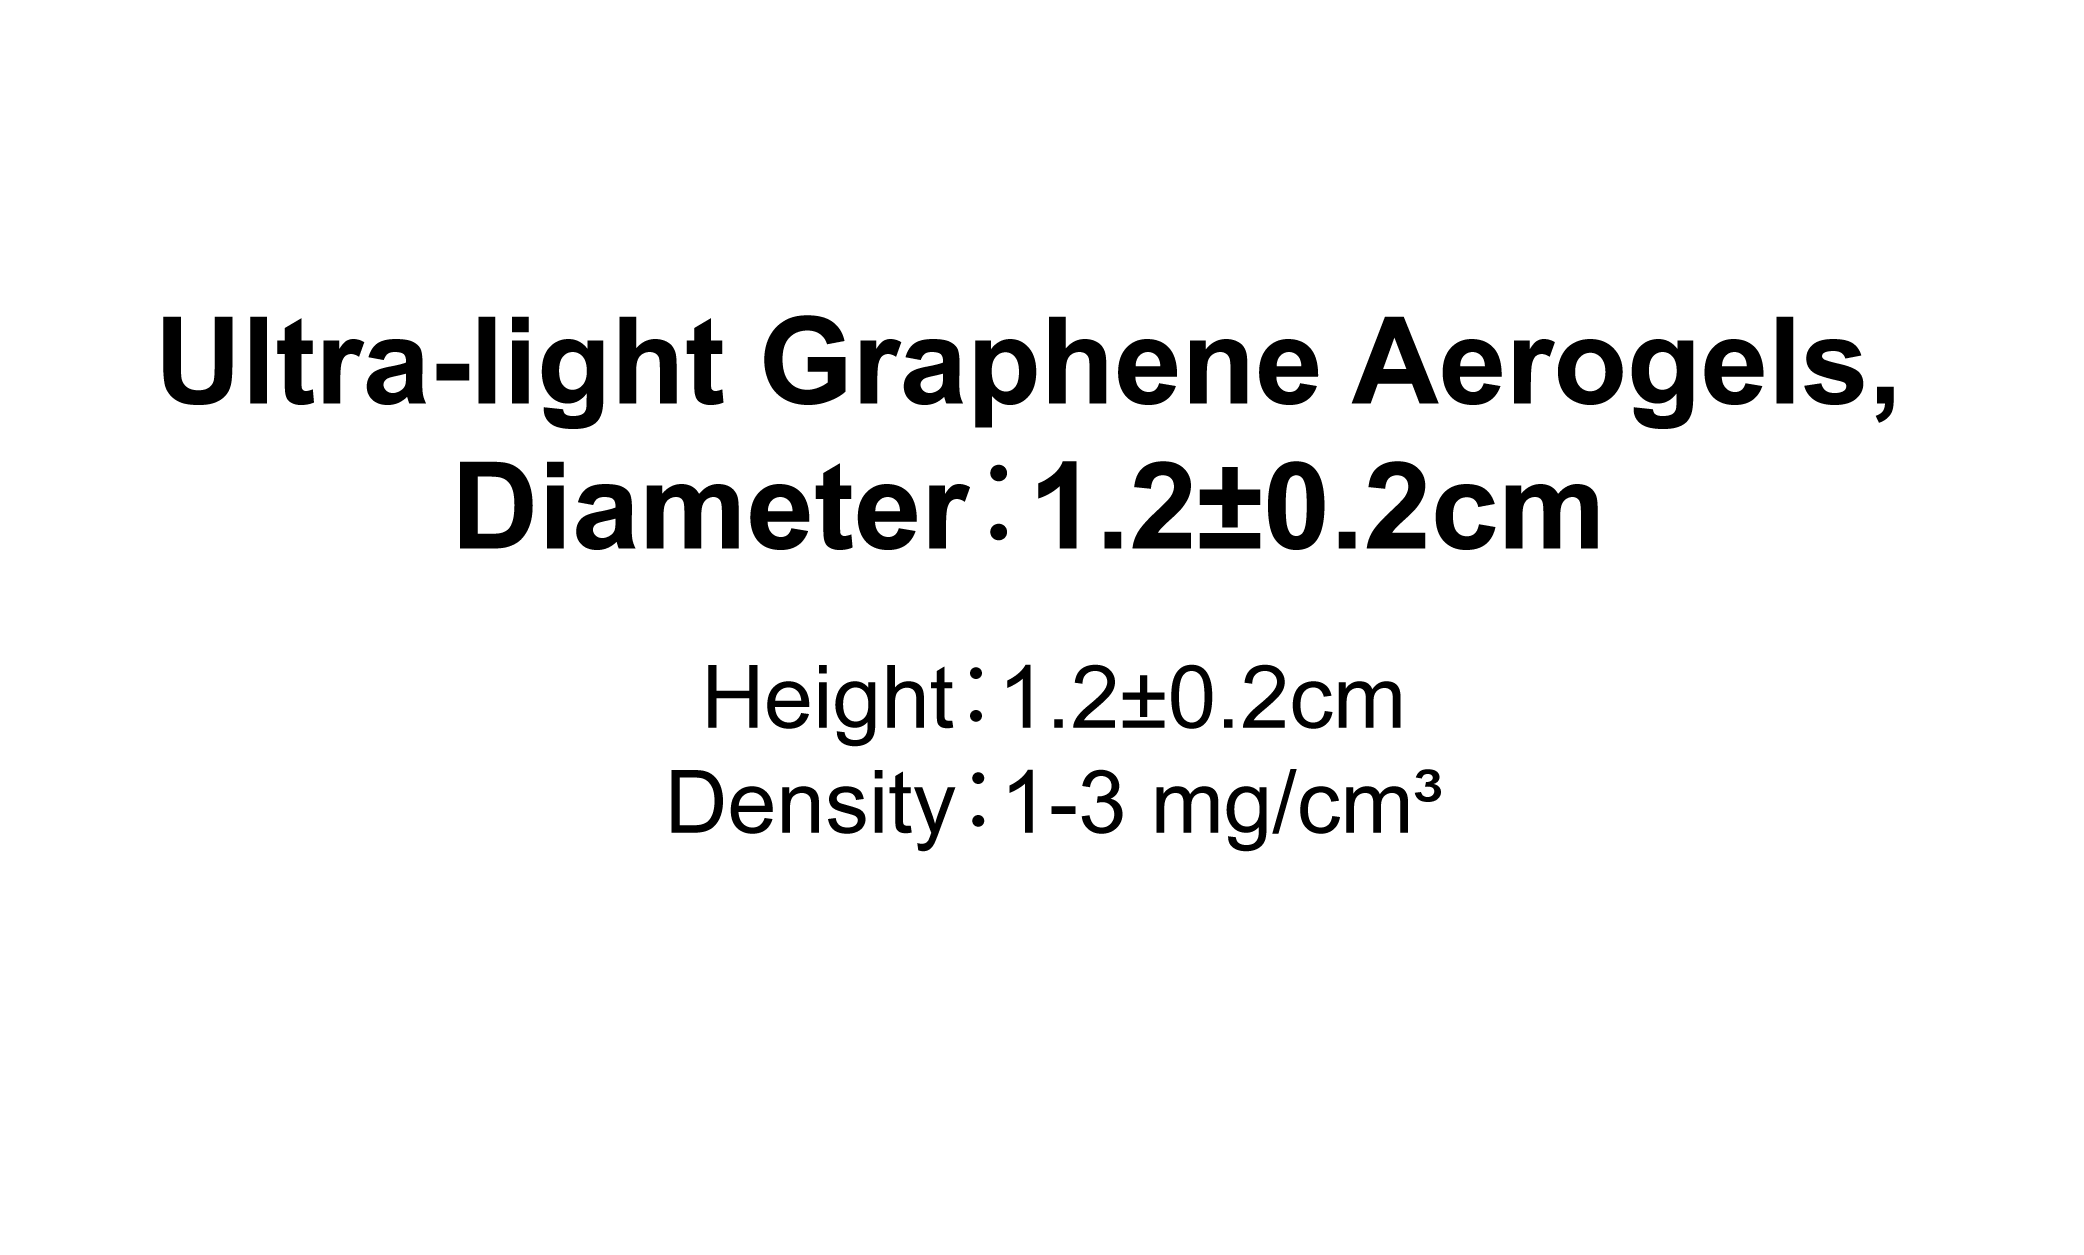 Ultra-light Graphene Aerogels,Diameter:1.2±0.2cm